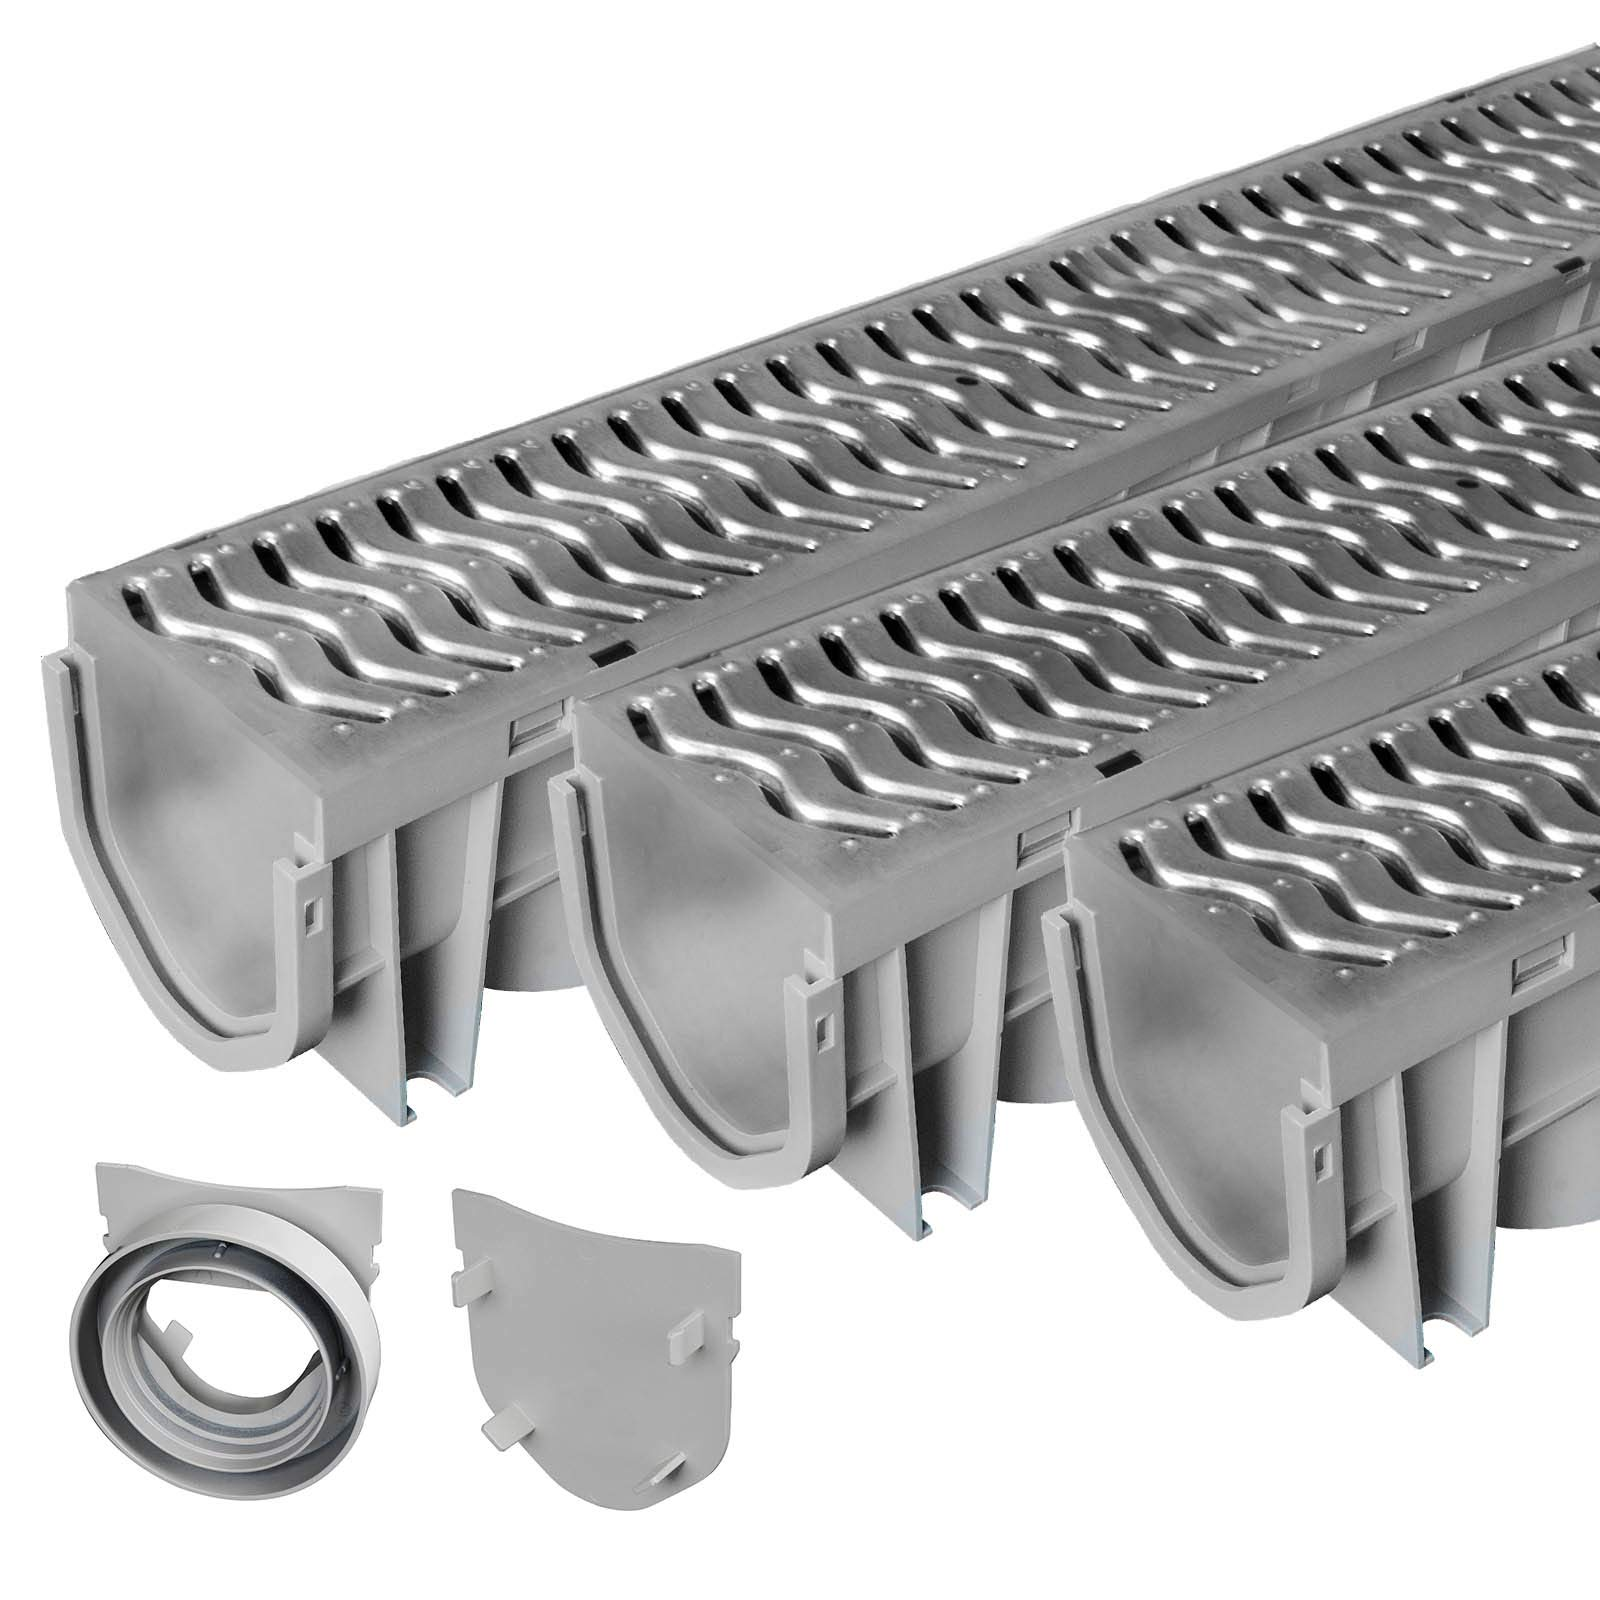 Source 1 Drainage Trench & Driveway Channel Drain with Galvanized Steel Grate - 3 Pack by Source 1 Drainage